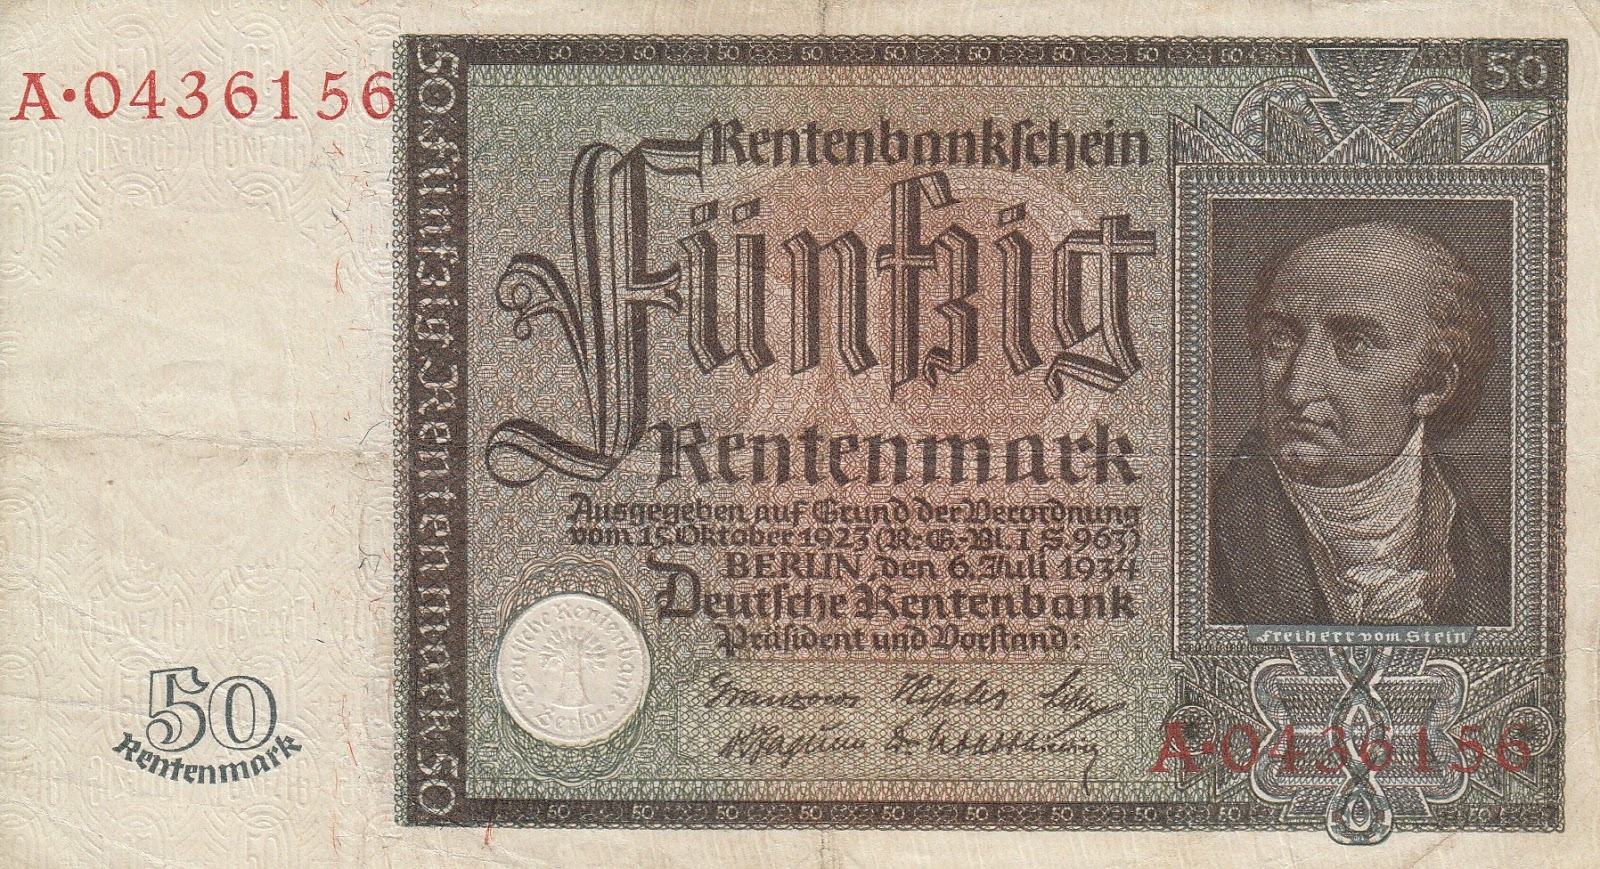 the introduction of a new currency 1923 rentenmark On 15 november 1923, a new currency, the rentenmark, was introduced at   participated in the introduction of the rentenmark, a new currency the value of.